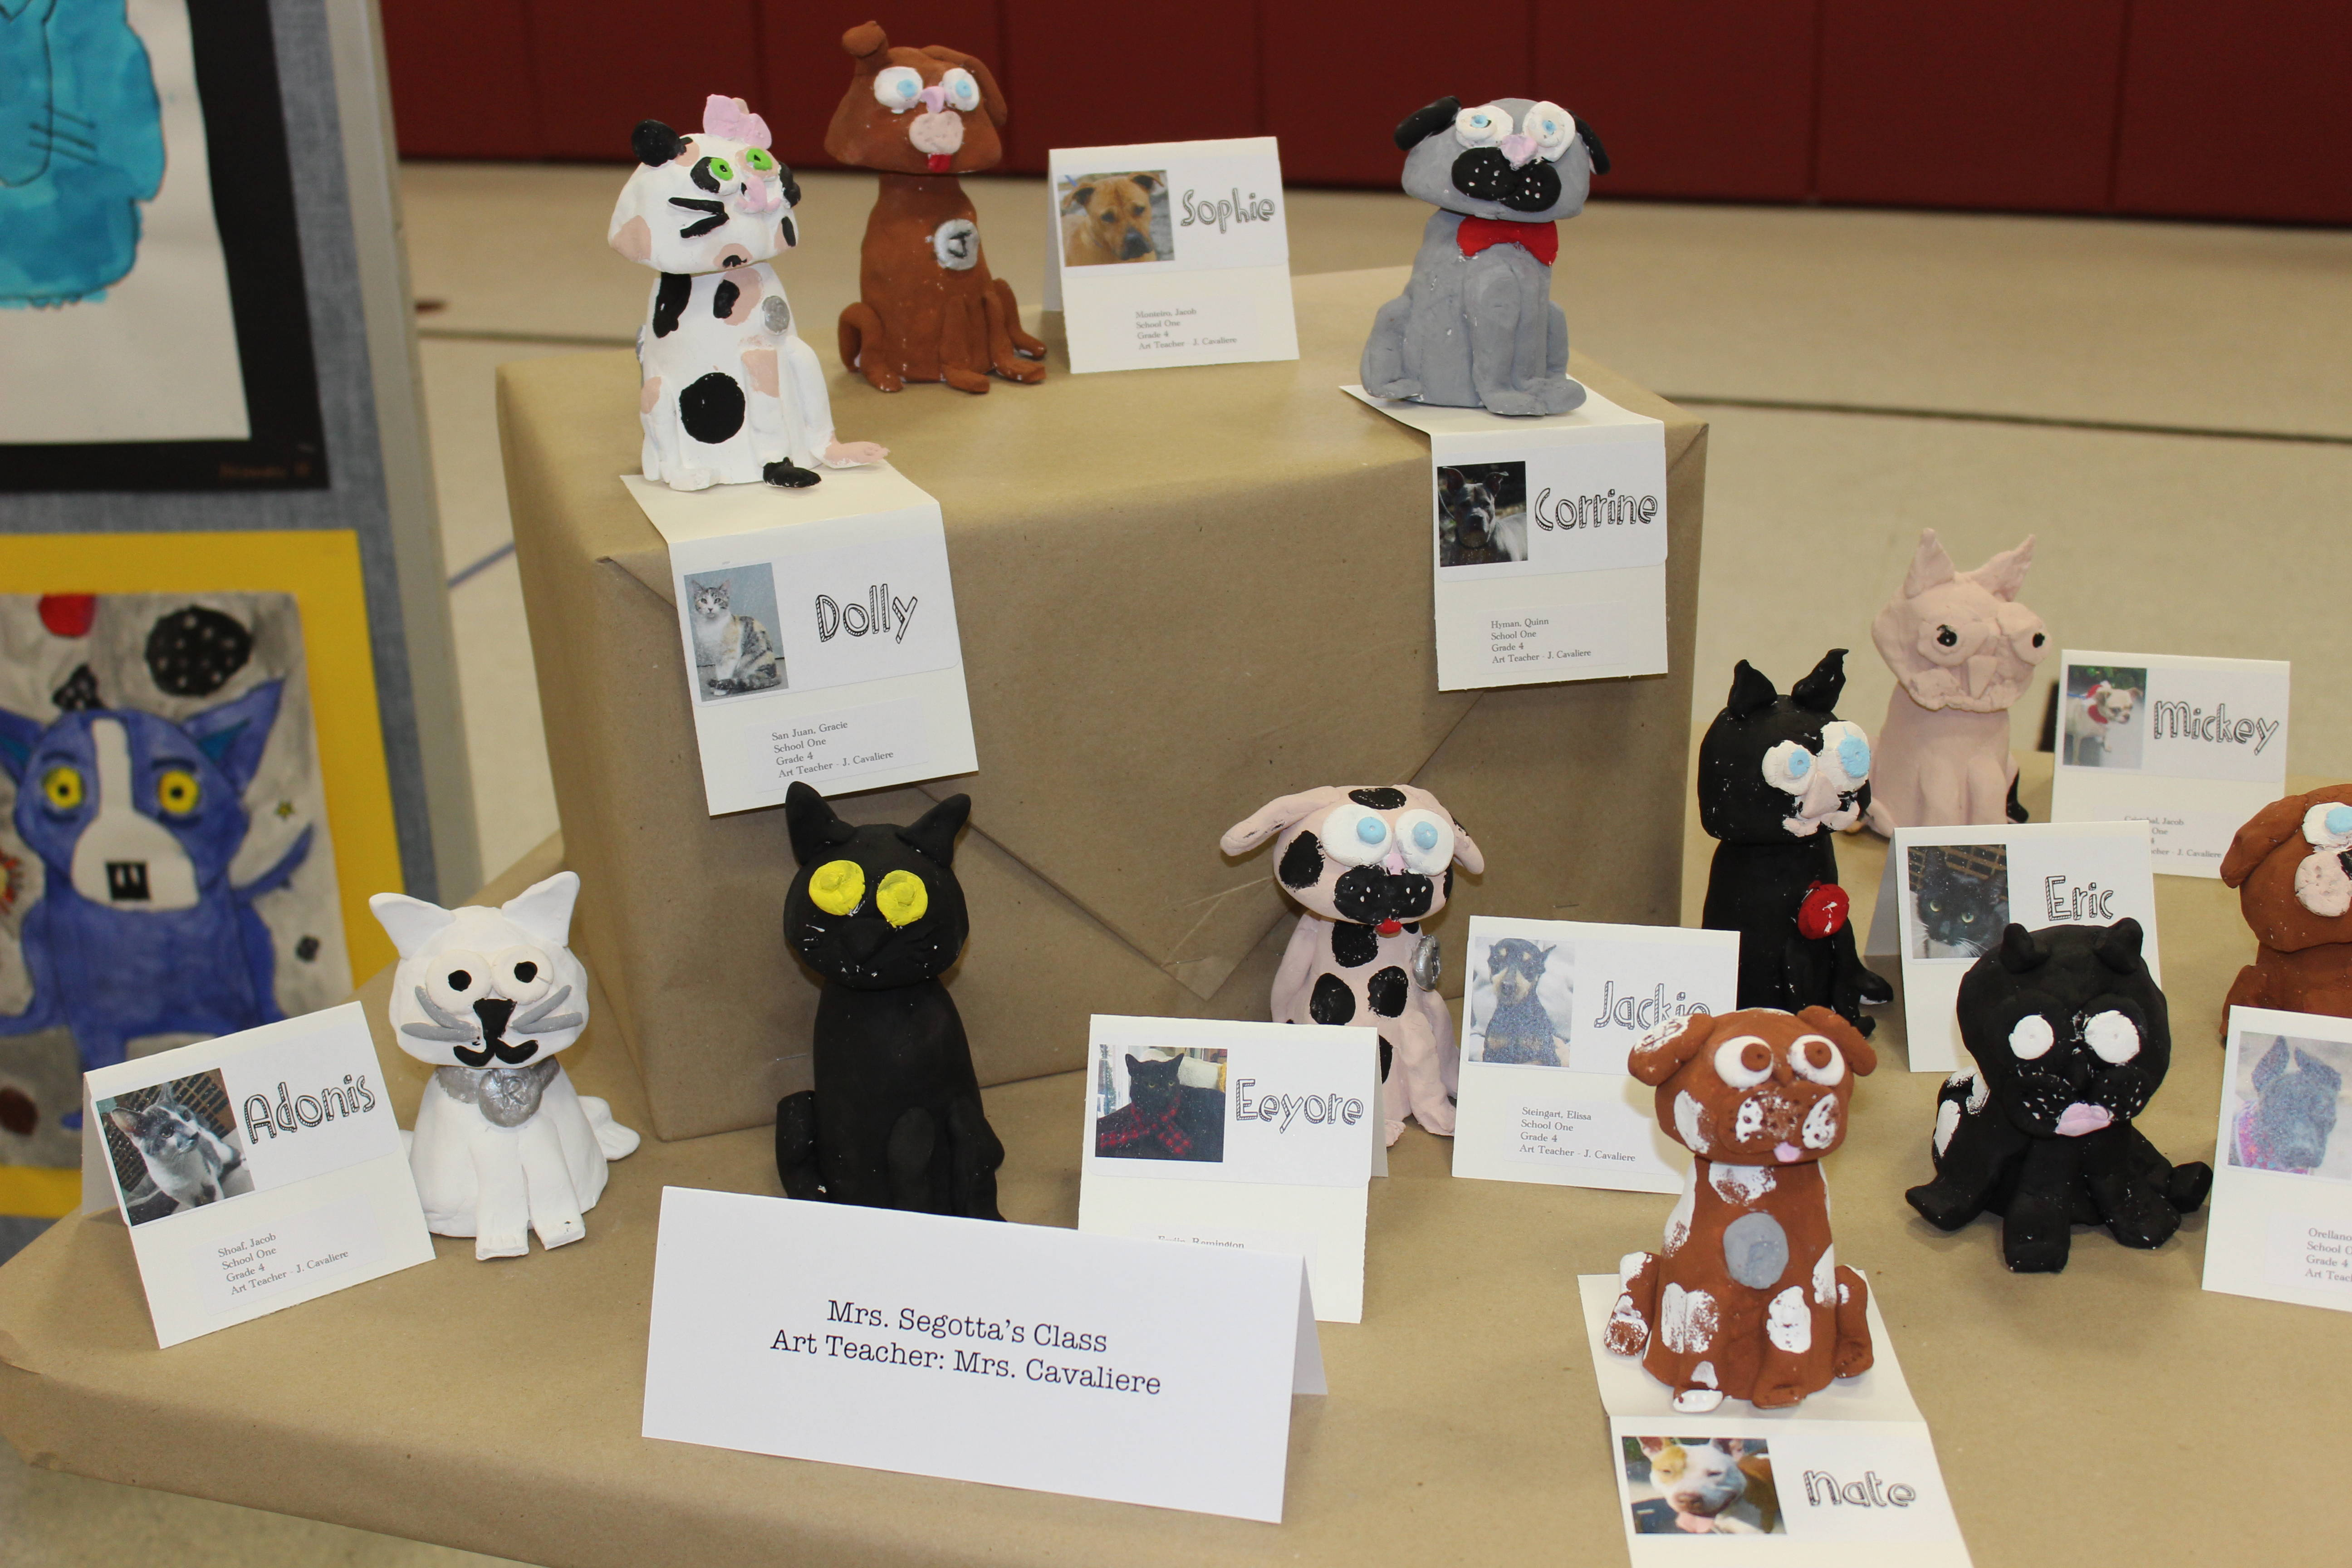 a2fe73d79517f7d4eac2_Paws_and_Claws_Art_Show.JPG